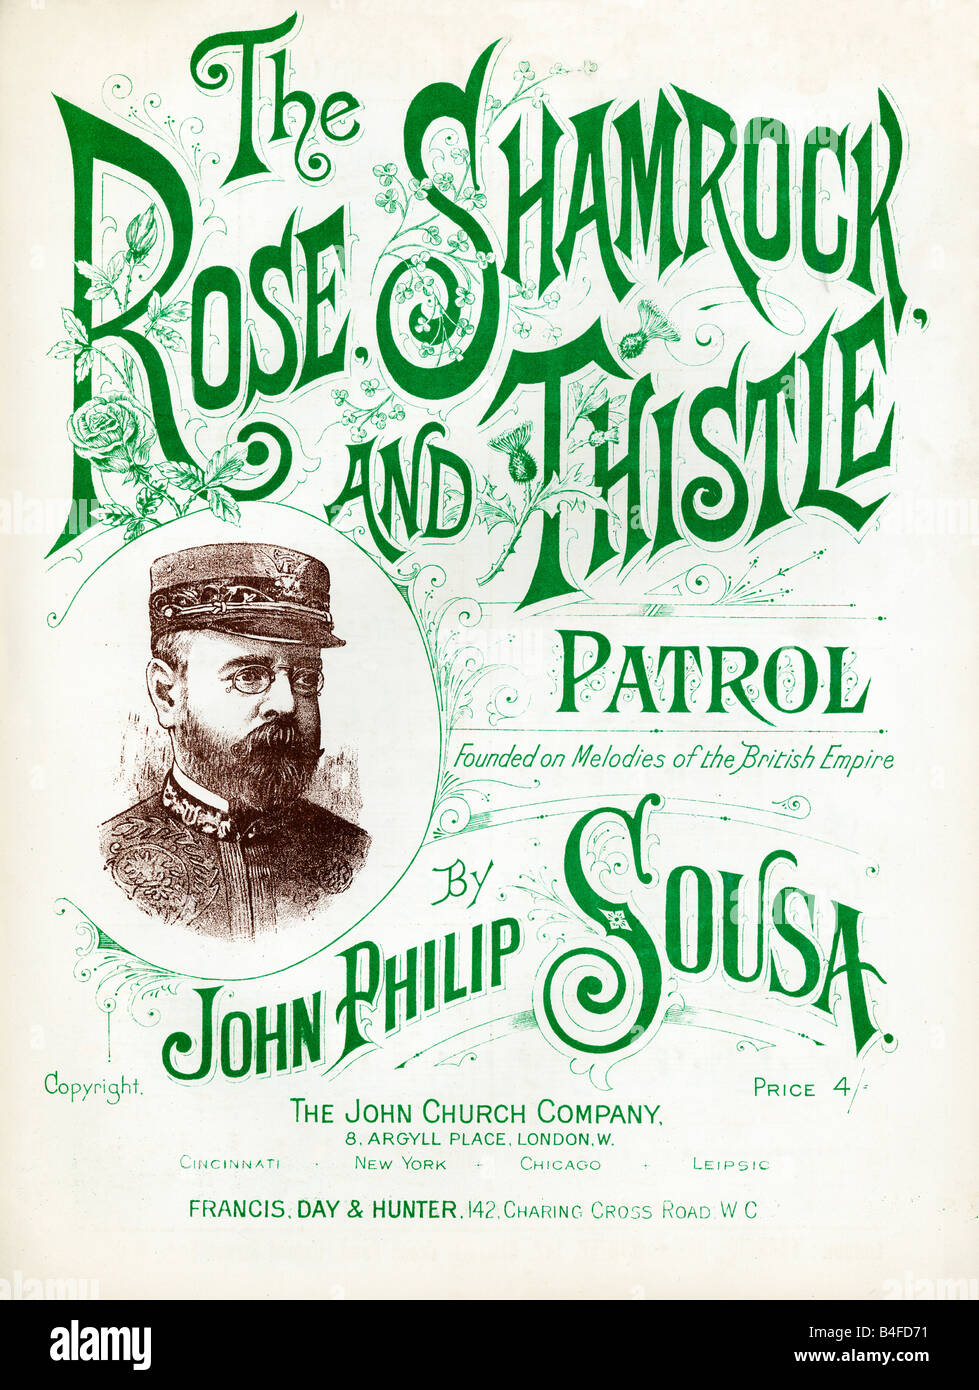 The Rose Shamrock and Thistle Patrol 1901 music sheet cover for a tune Founded on Melodies of the British Empire - Stock Image